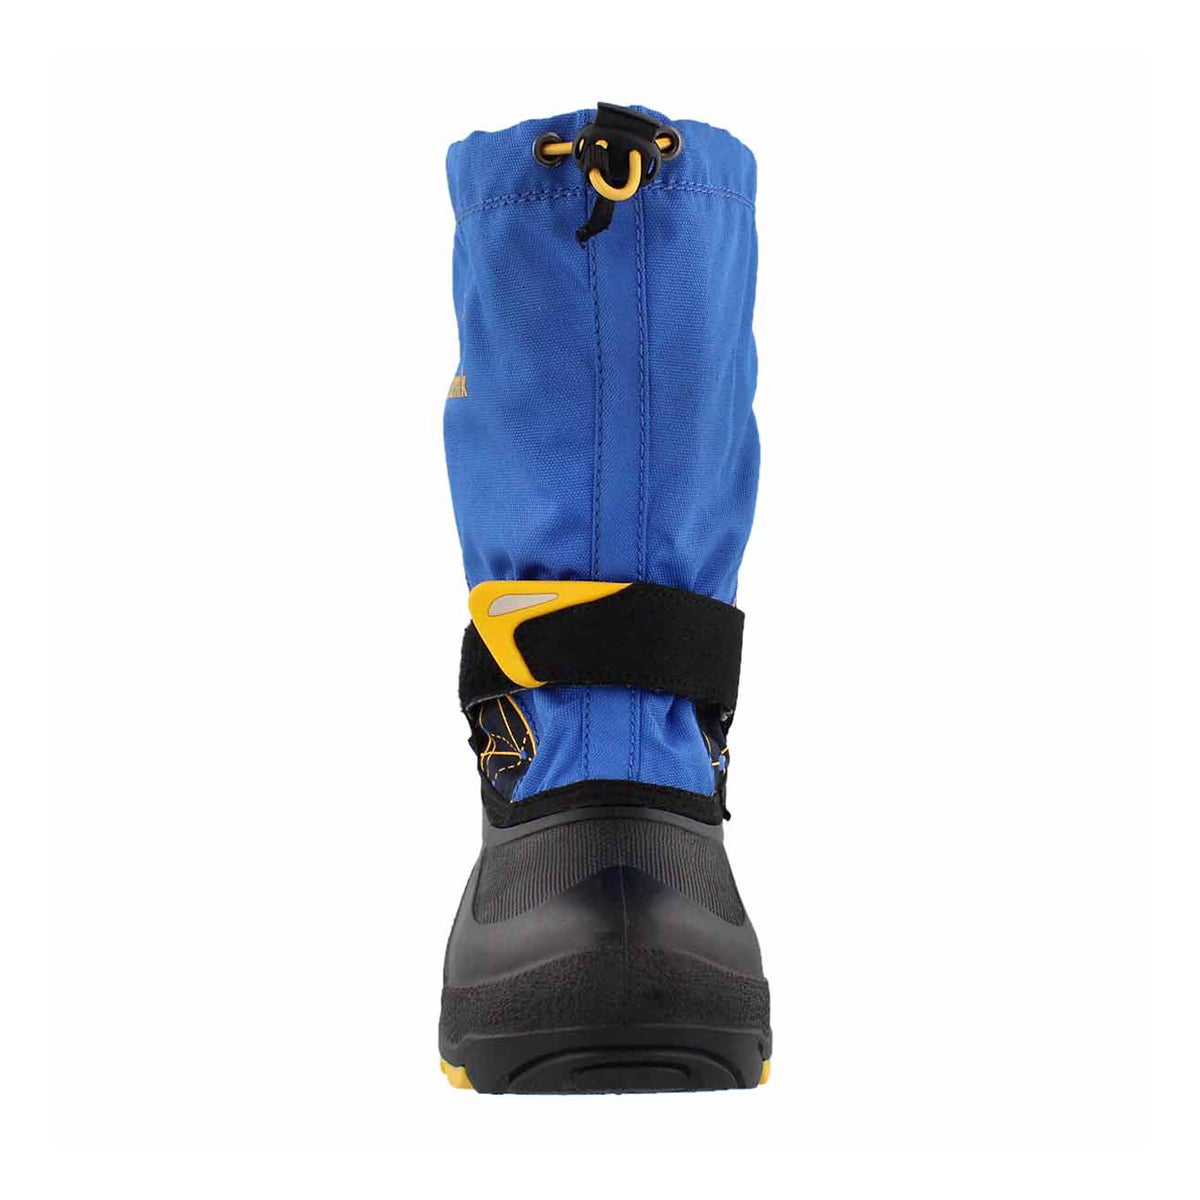 Bys Sleet 2 blu/nvy pull on winter boot